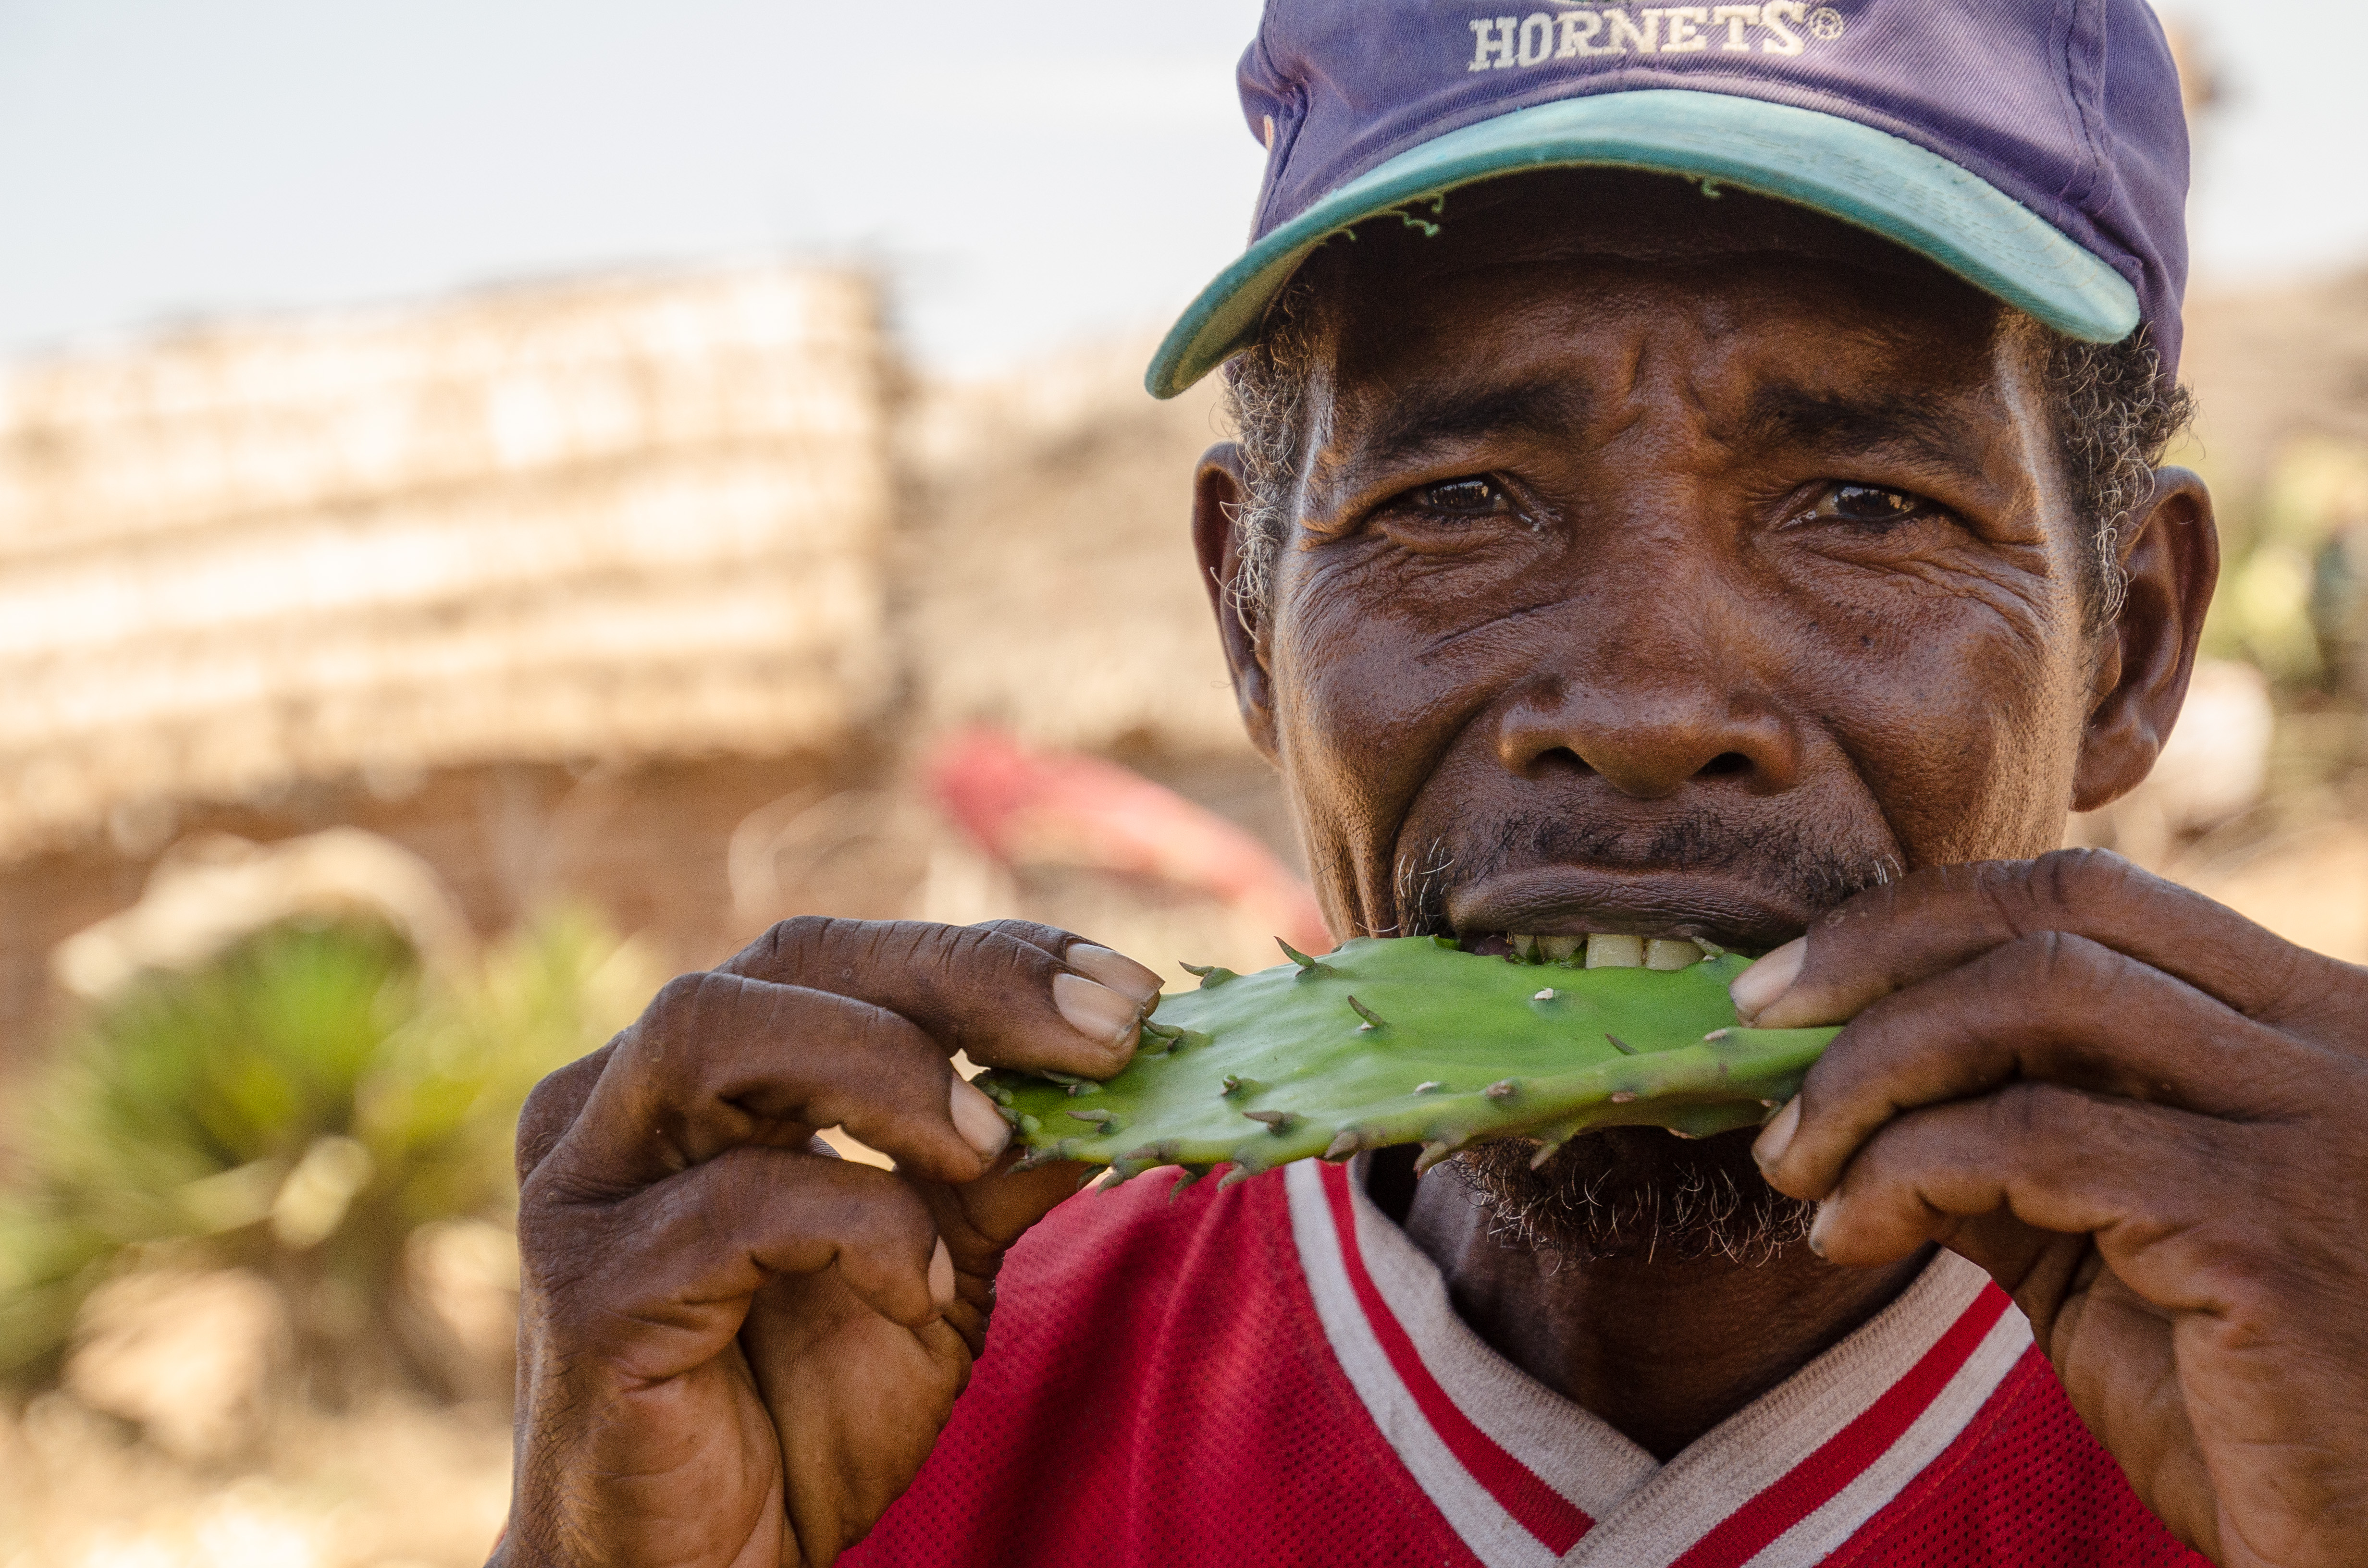 'I have one grasshopper but I will break it in half and give you half': A resilient country – Madagascar